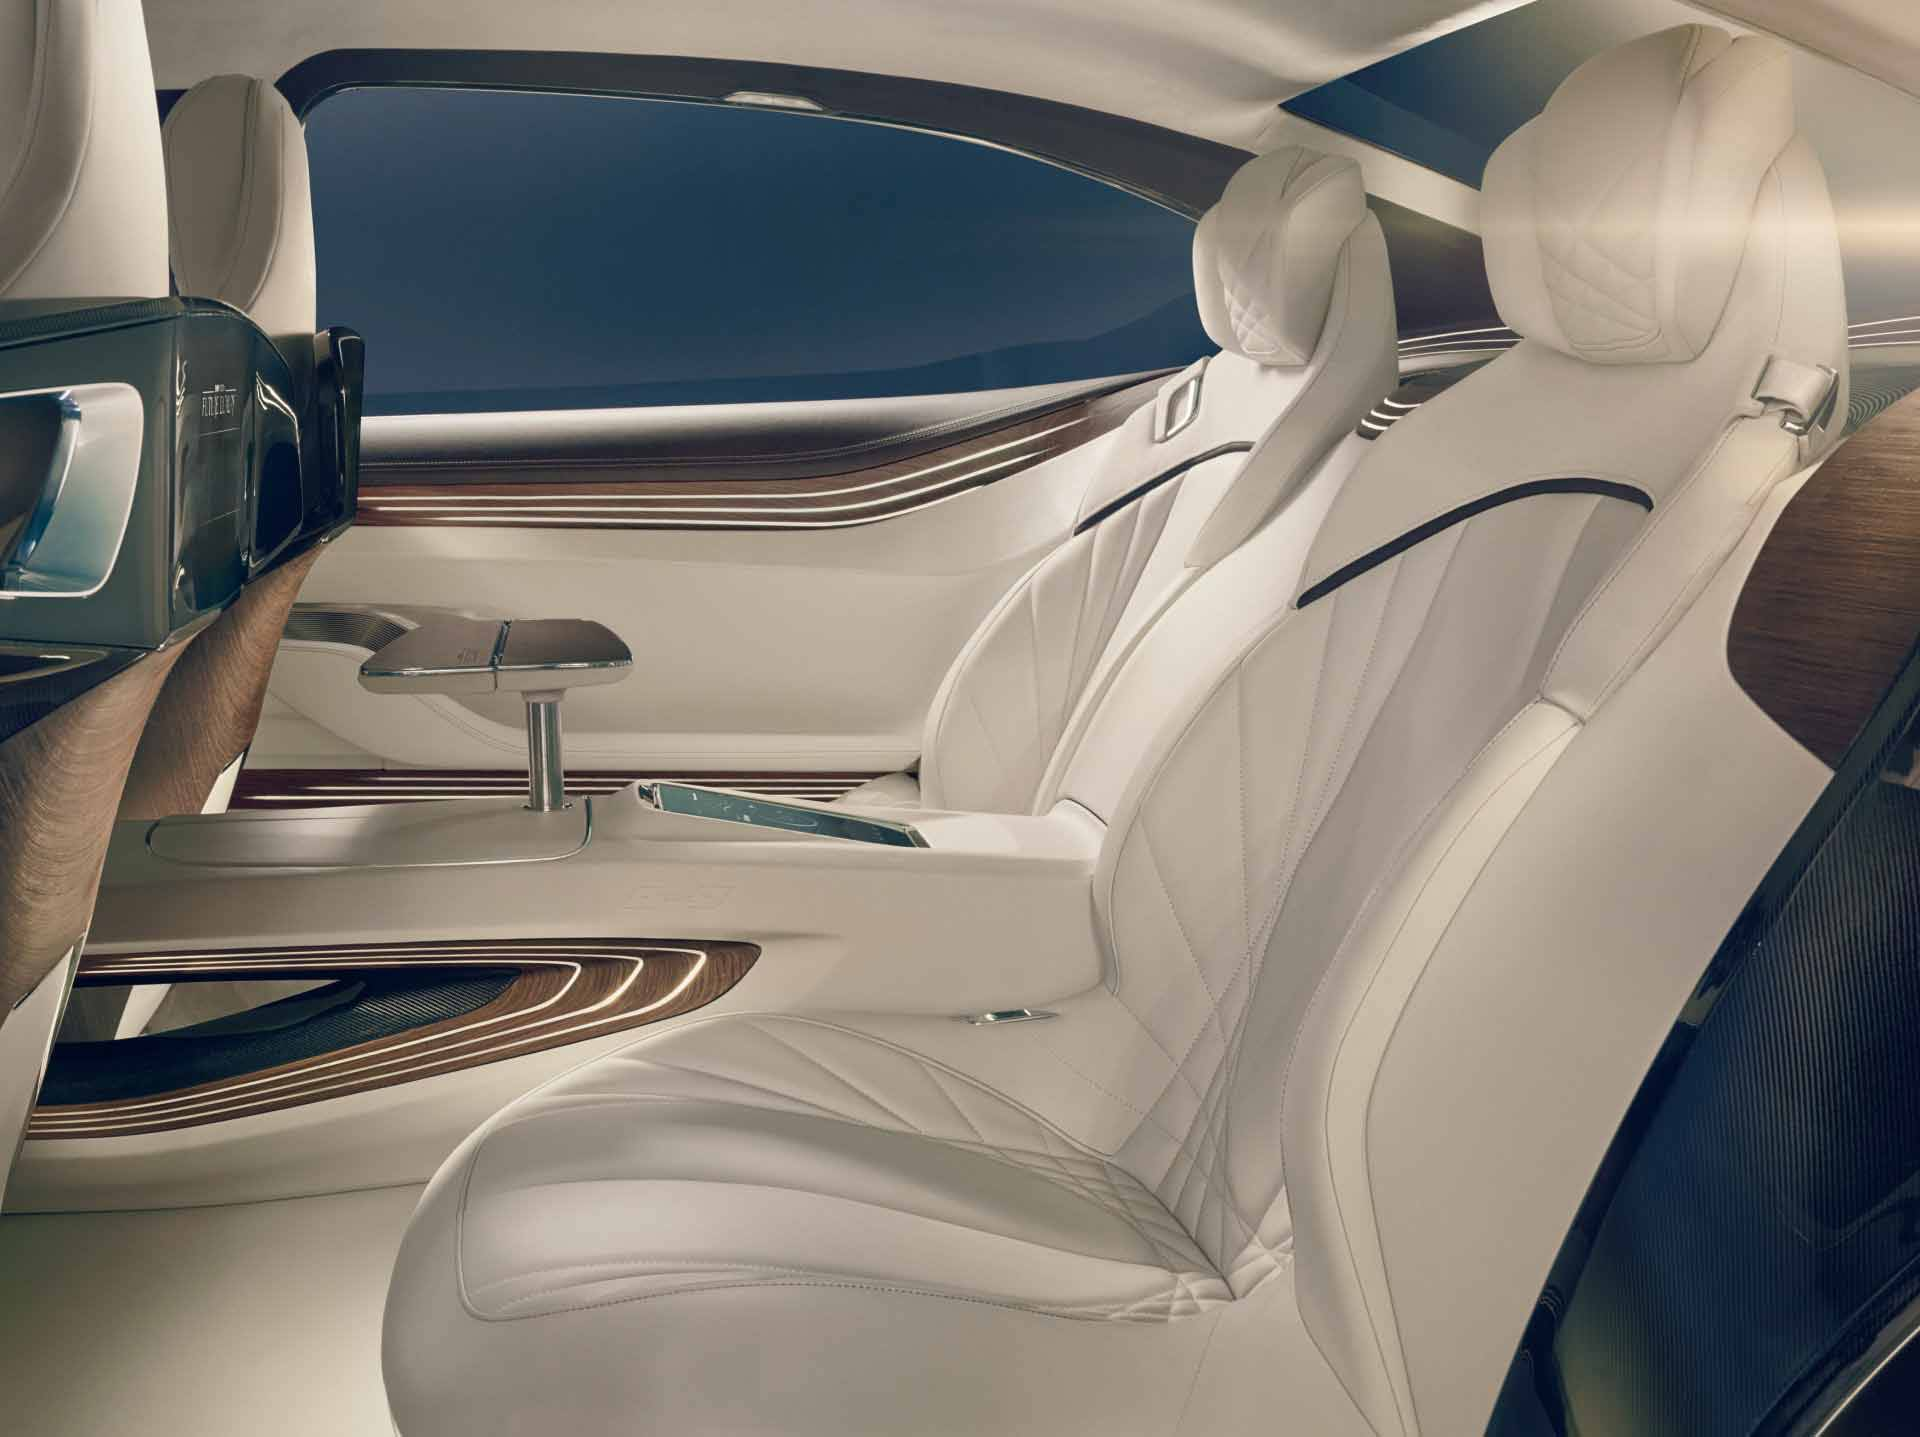 _BMW-Vision-Future-Luxury-auf-der-Auto-China-2014-innen3